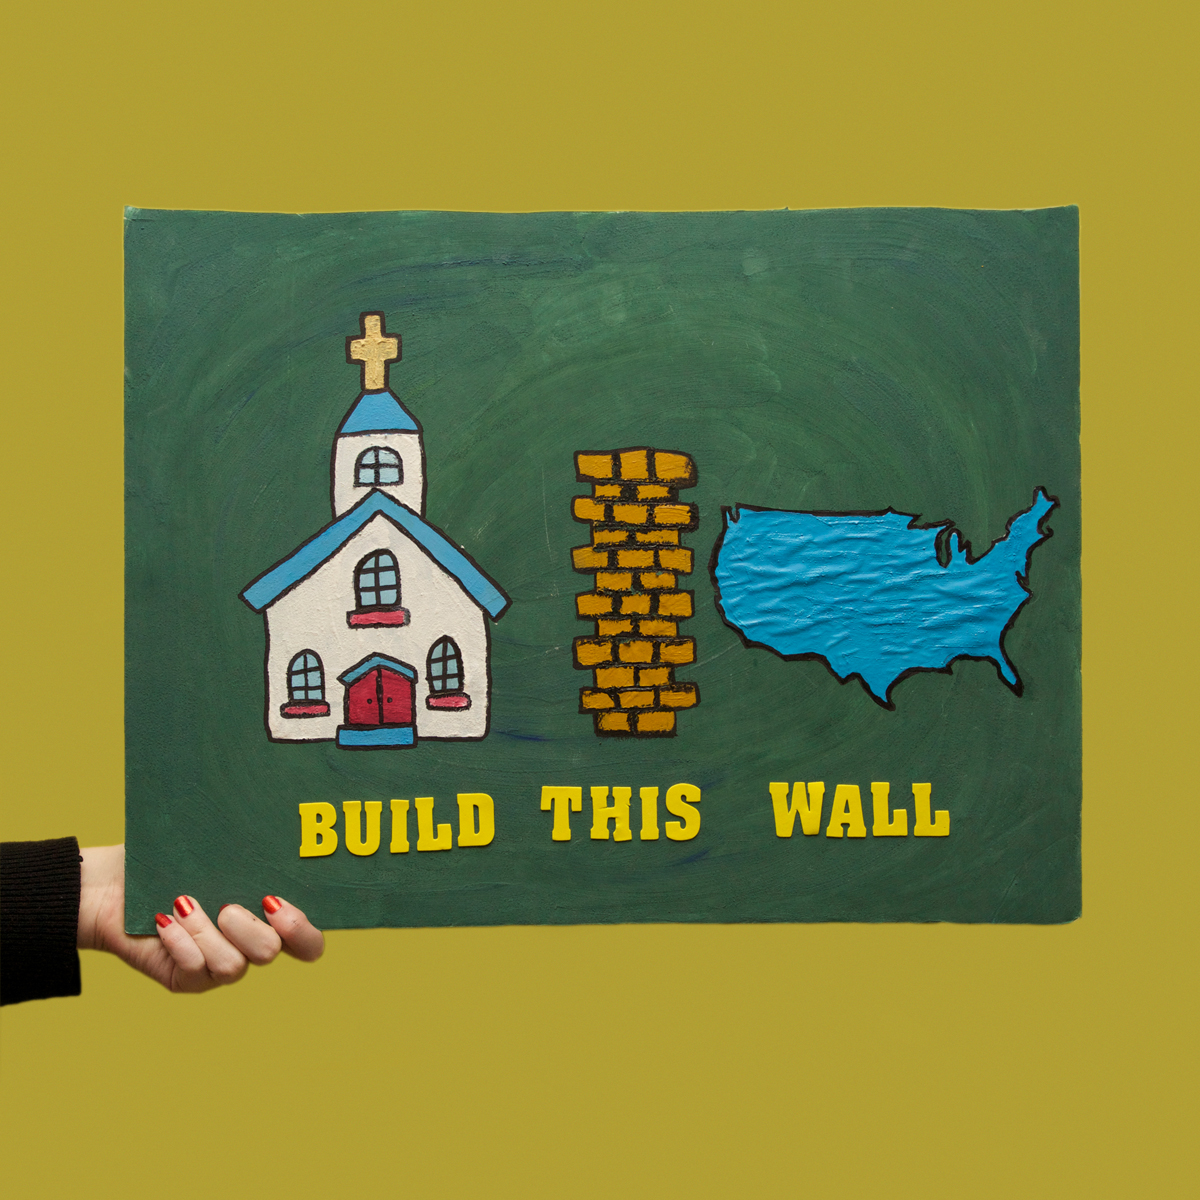 45 Protest Signs_Brandon and Olivia Locher_44_BuildThisWall